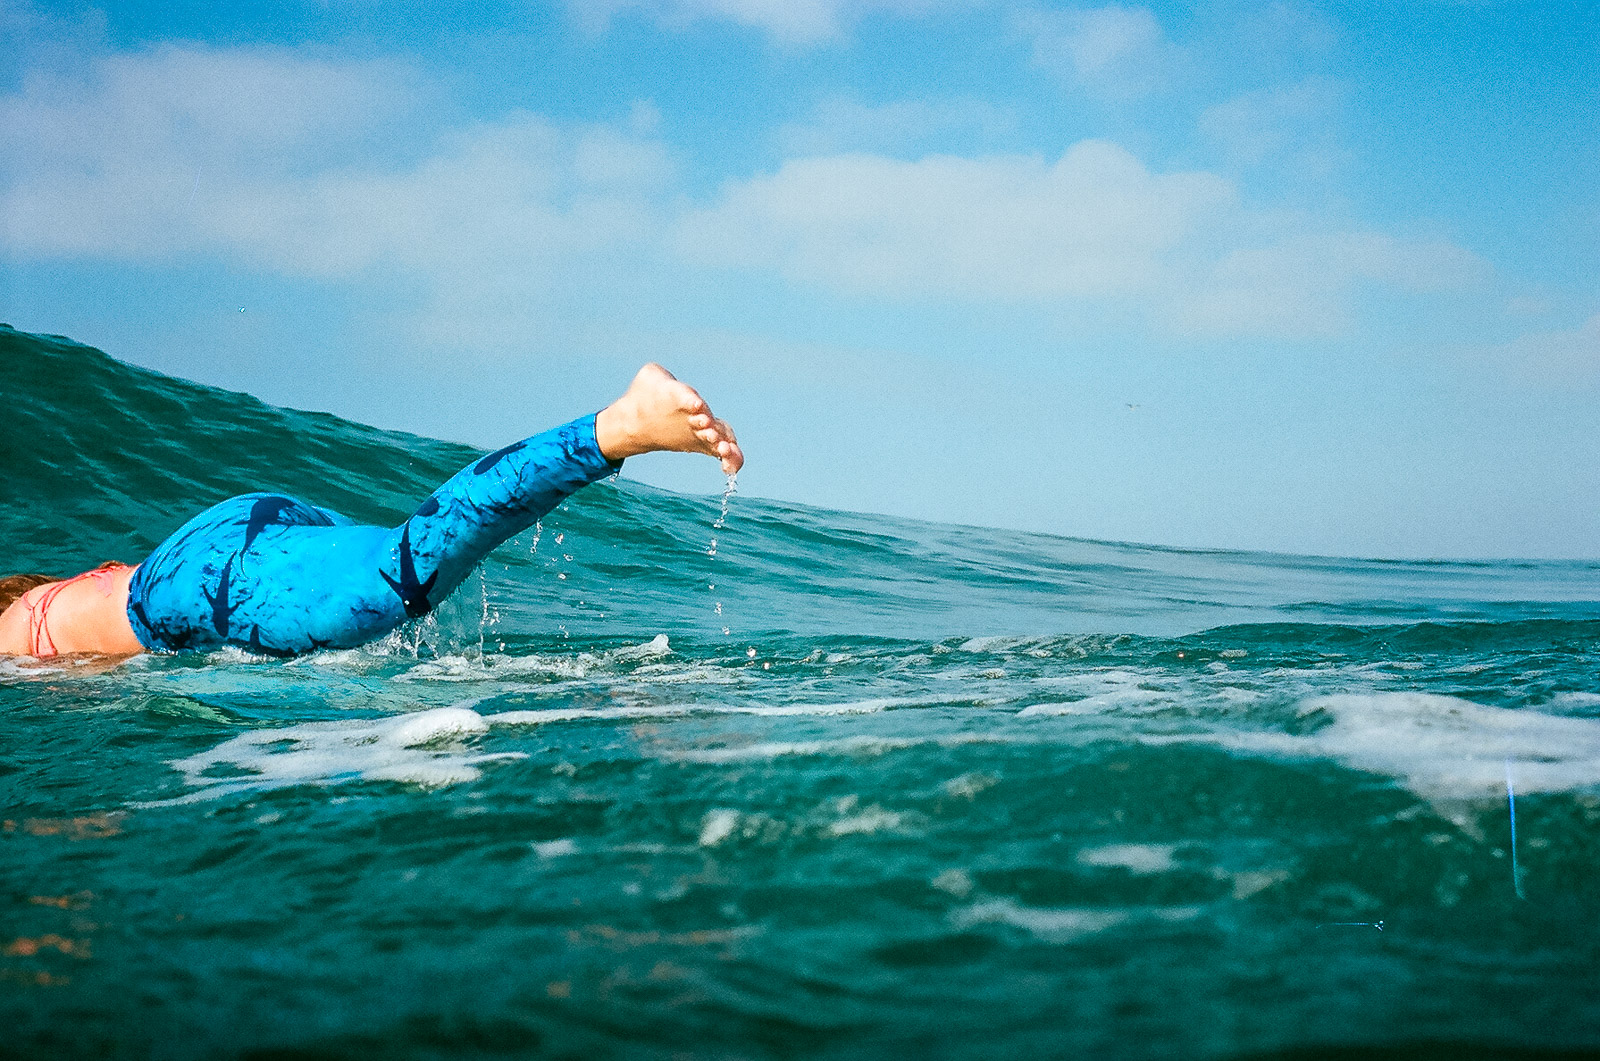 35mm color film Surfing photo shoot in the water at Huntington State Beach with girl surfer duck diving for Get wise fool eco-friendly surf company